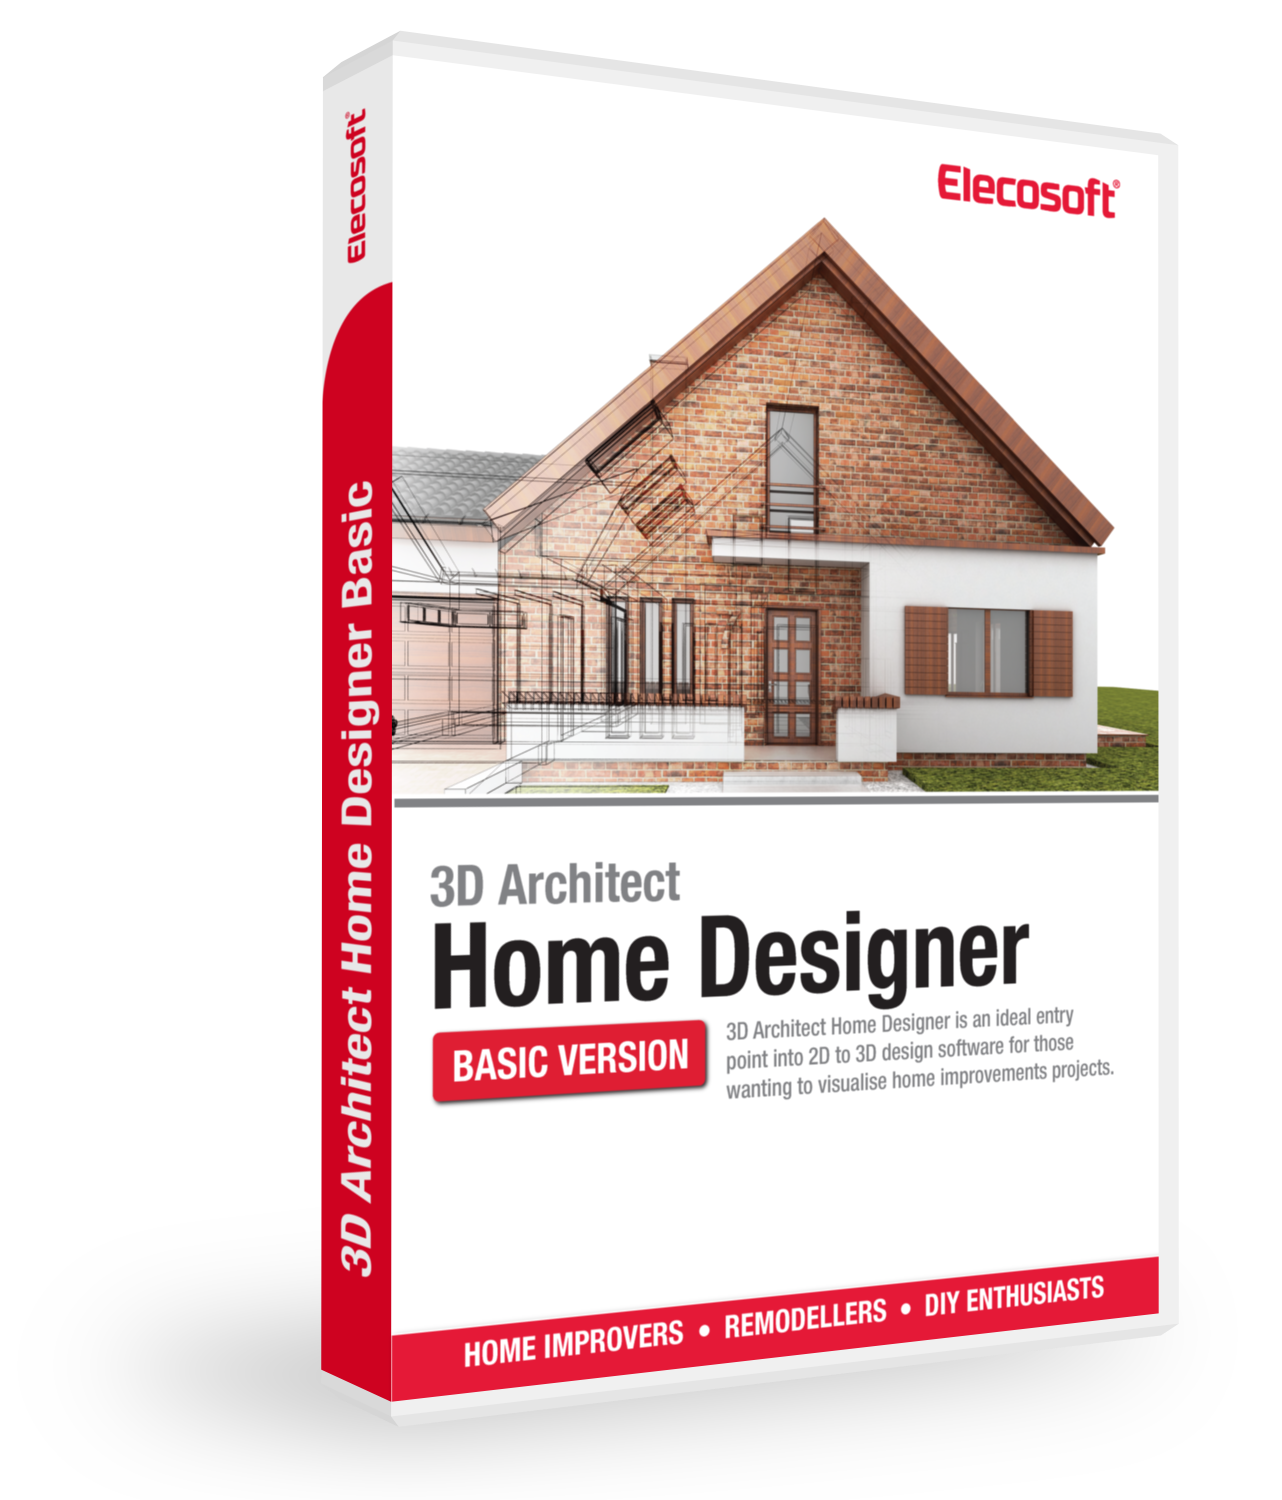 home design software home design software for diy diy closet systems reviews home design ideas